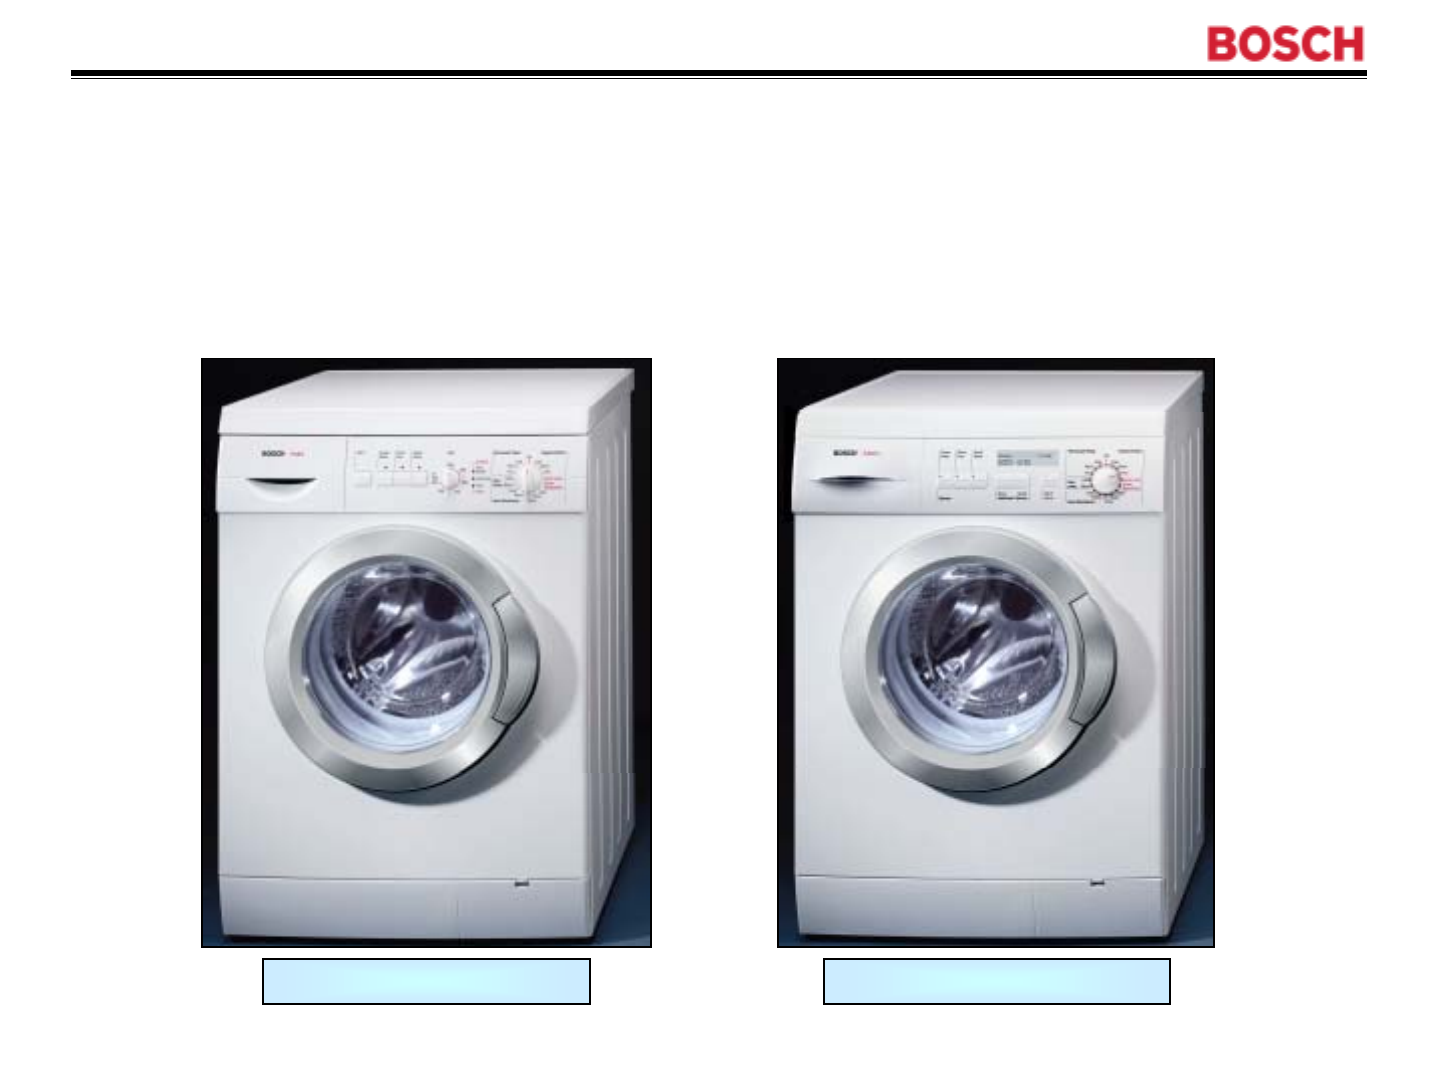 bosch appliances washer wfr2460uc user guide manualsonline com rh laundry manualsonline com bosch washer manual nexxt 500 series bosch washer manual nexxt